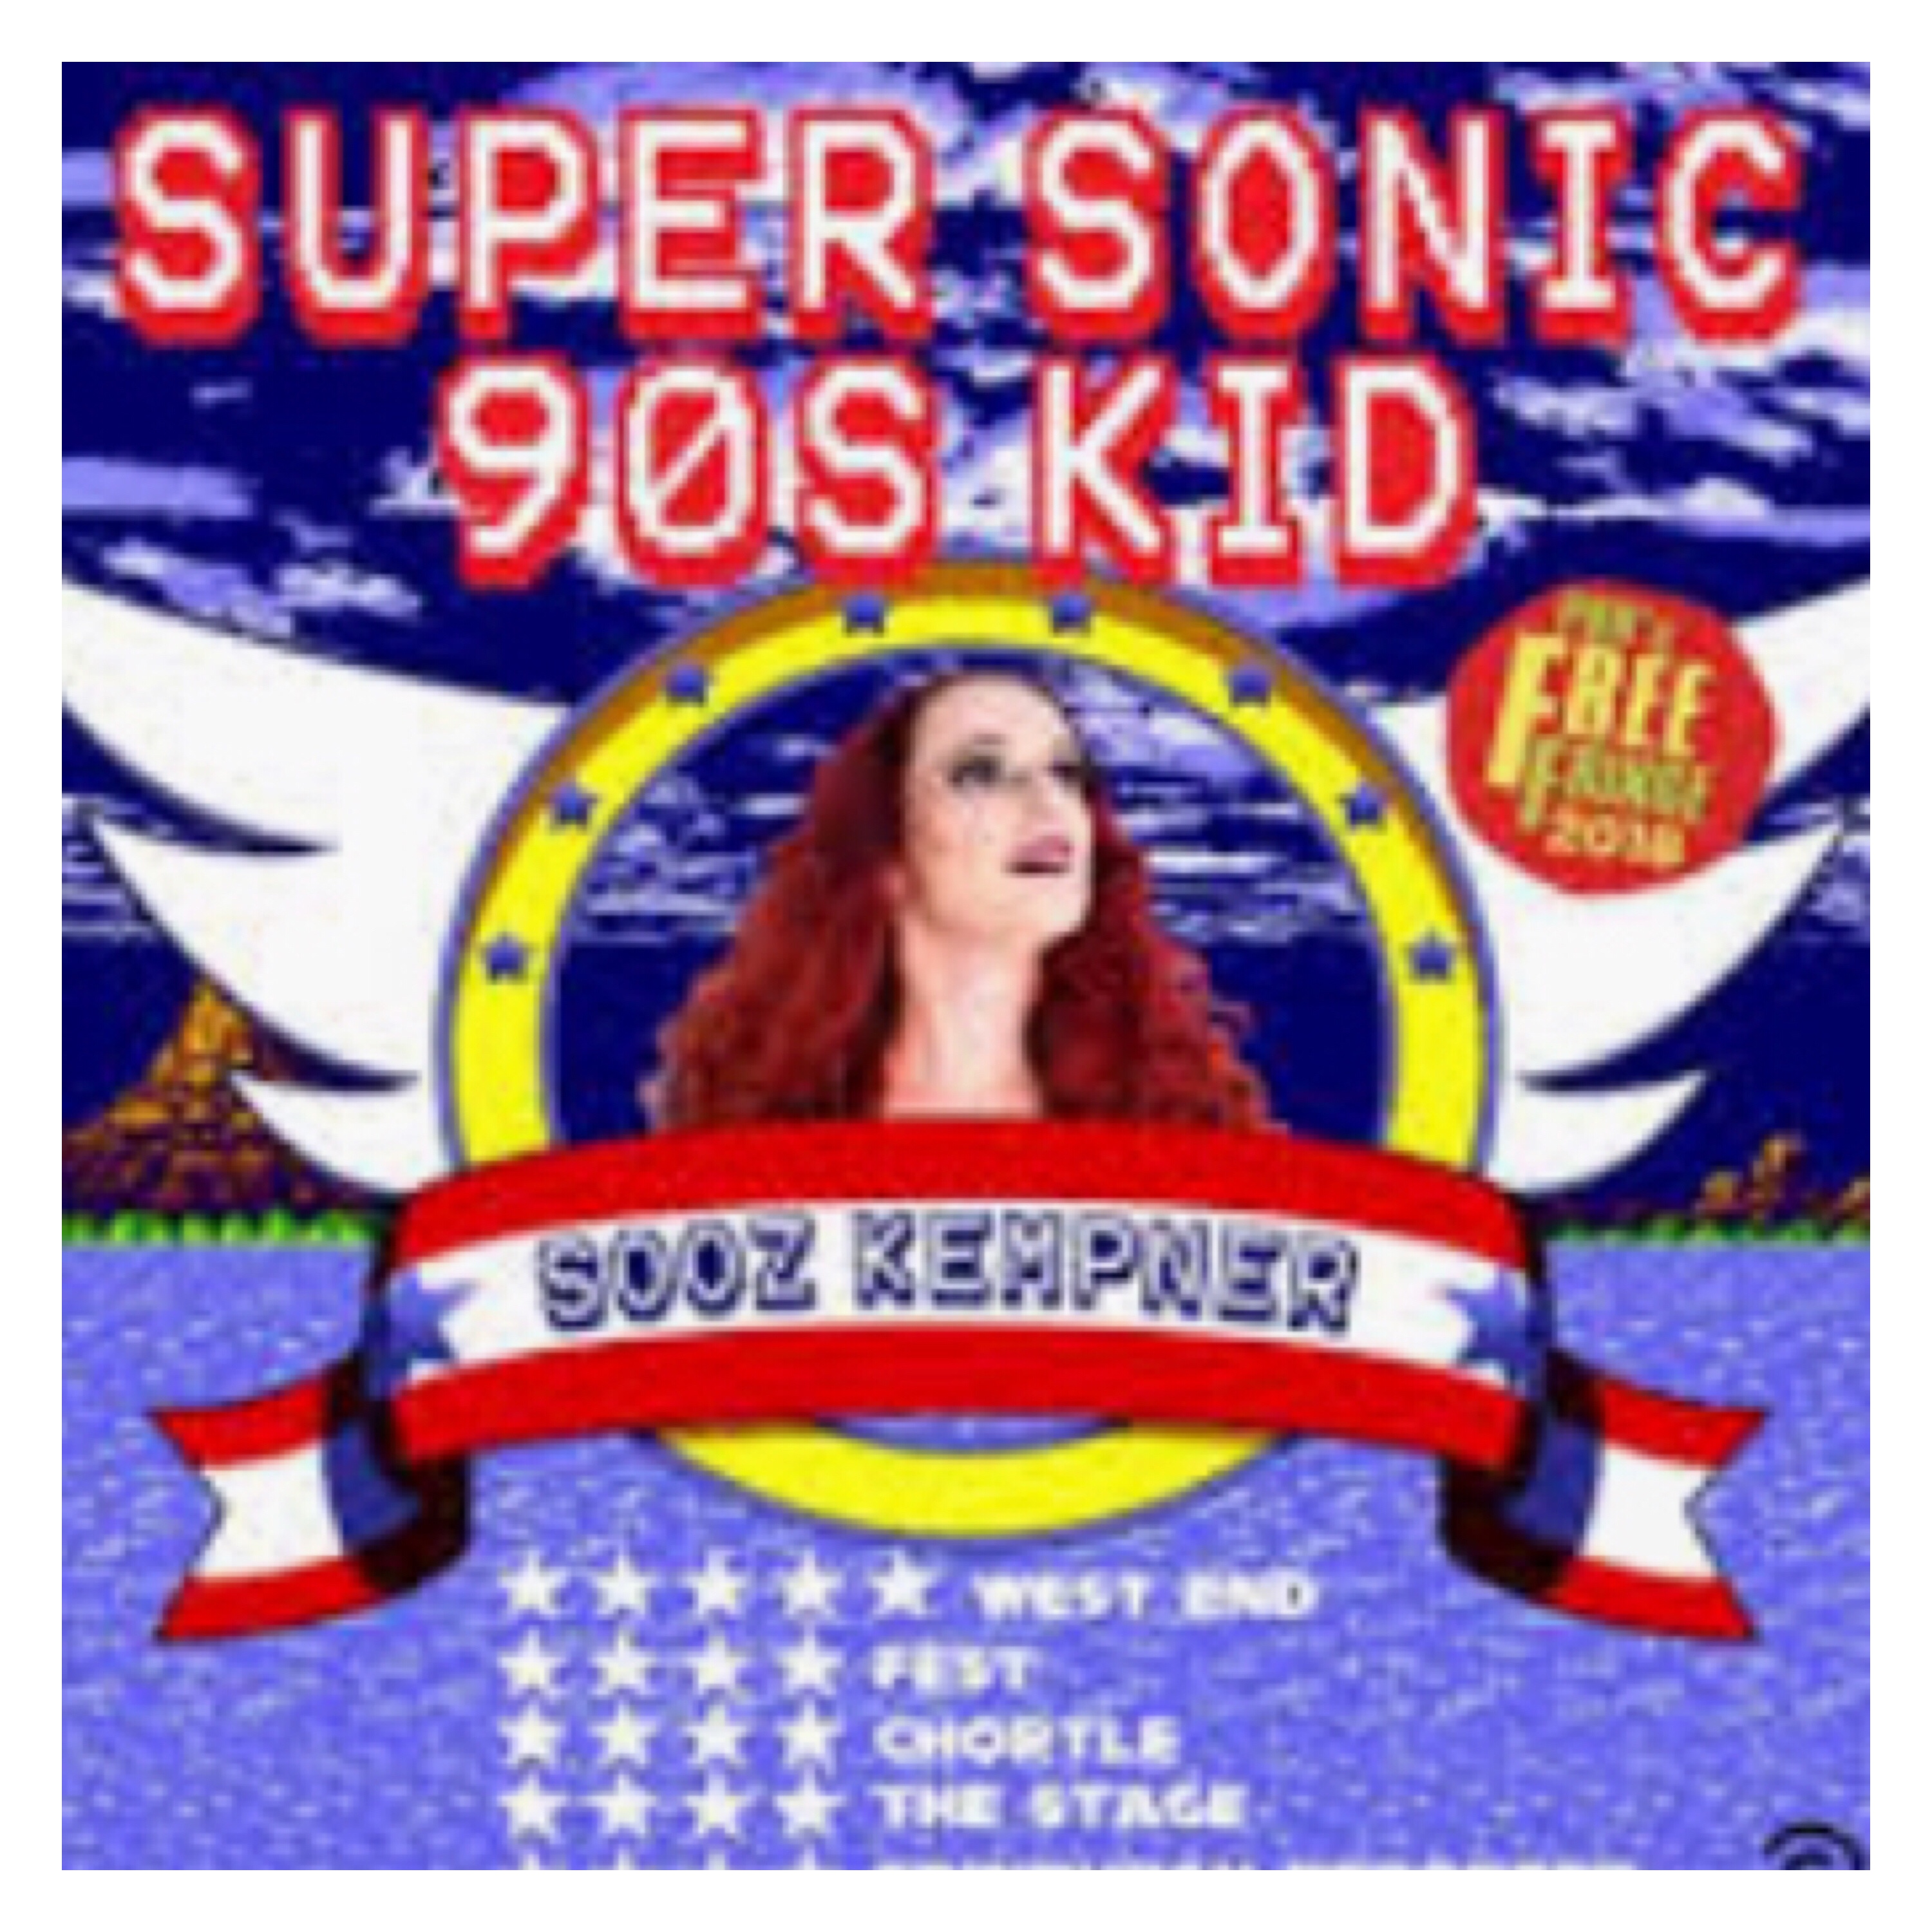 Super sonic 90's kid flyer